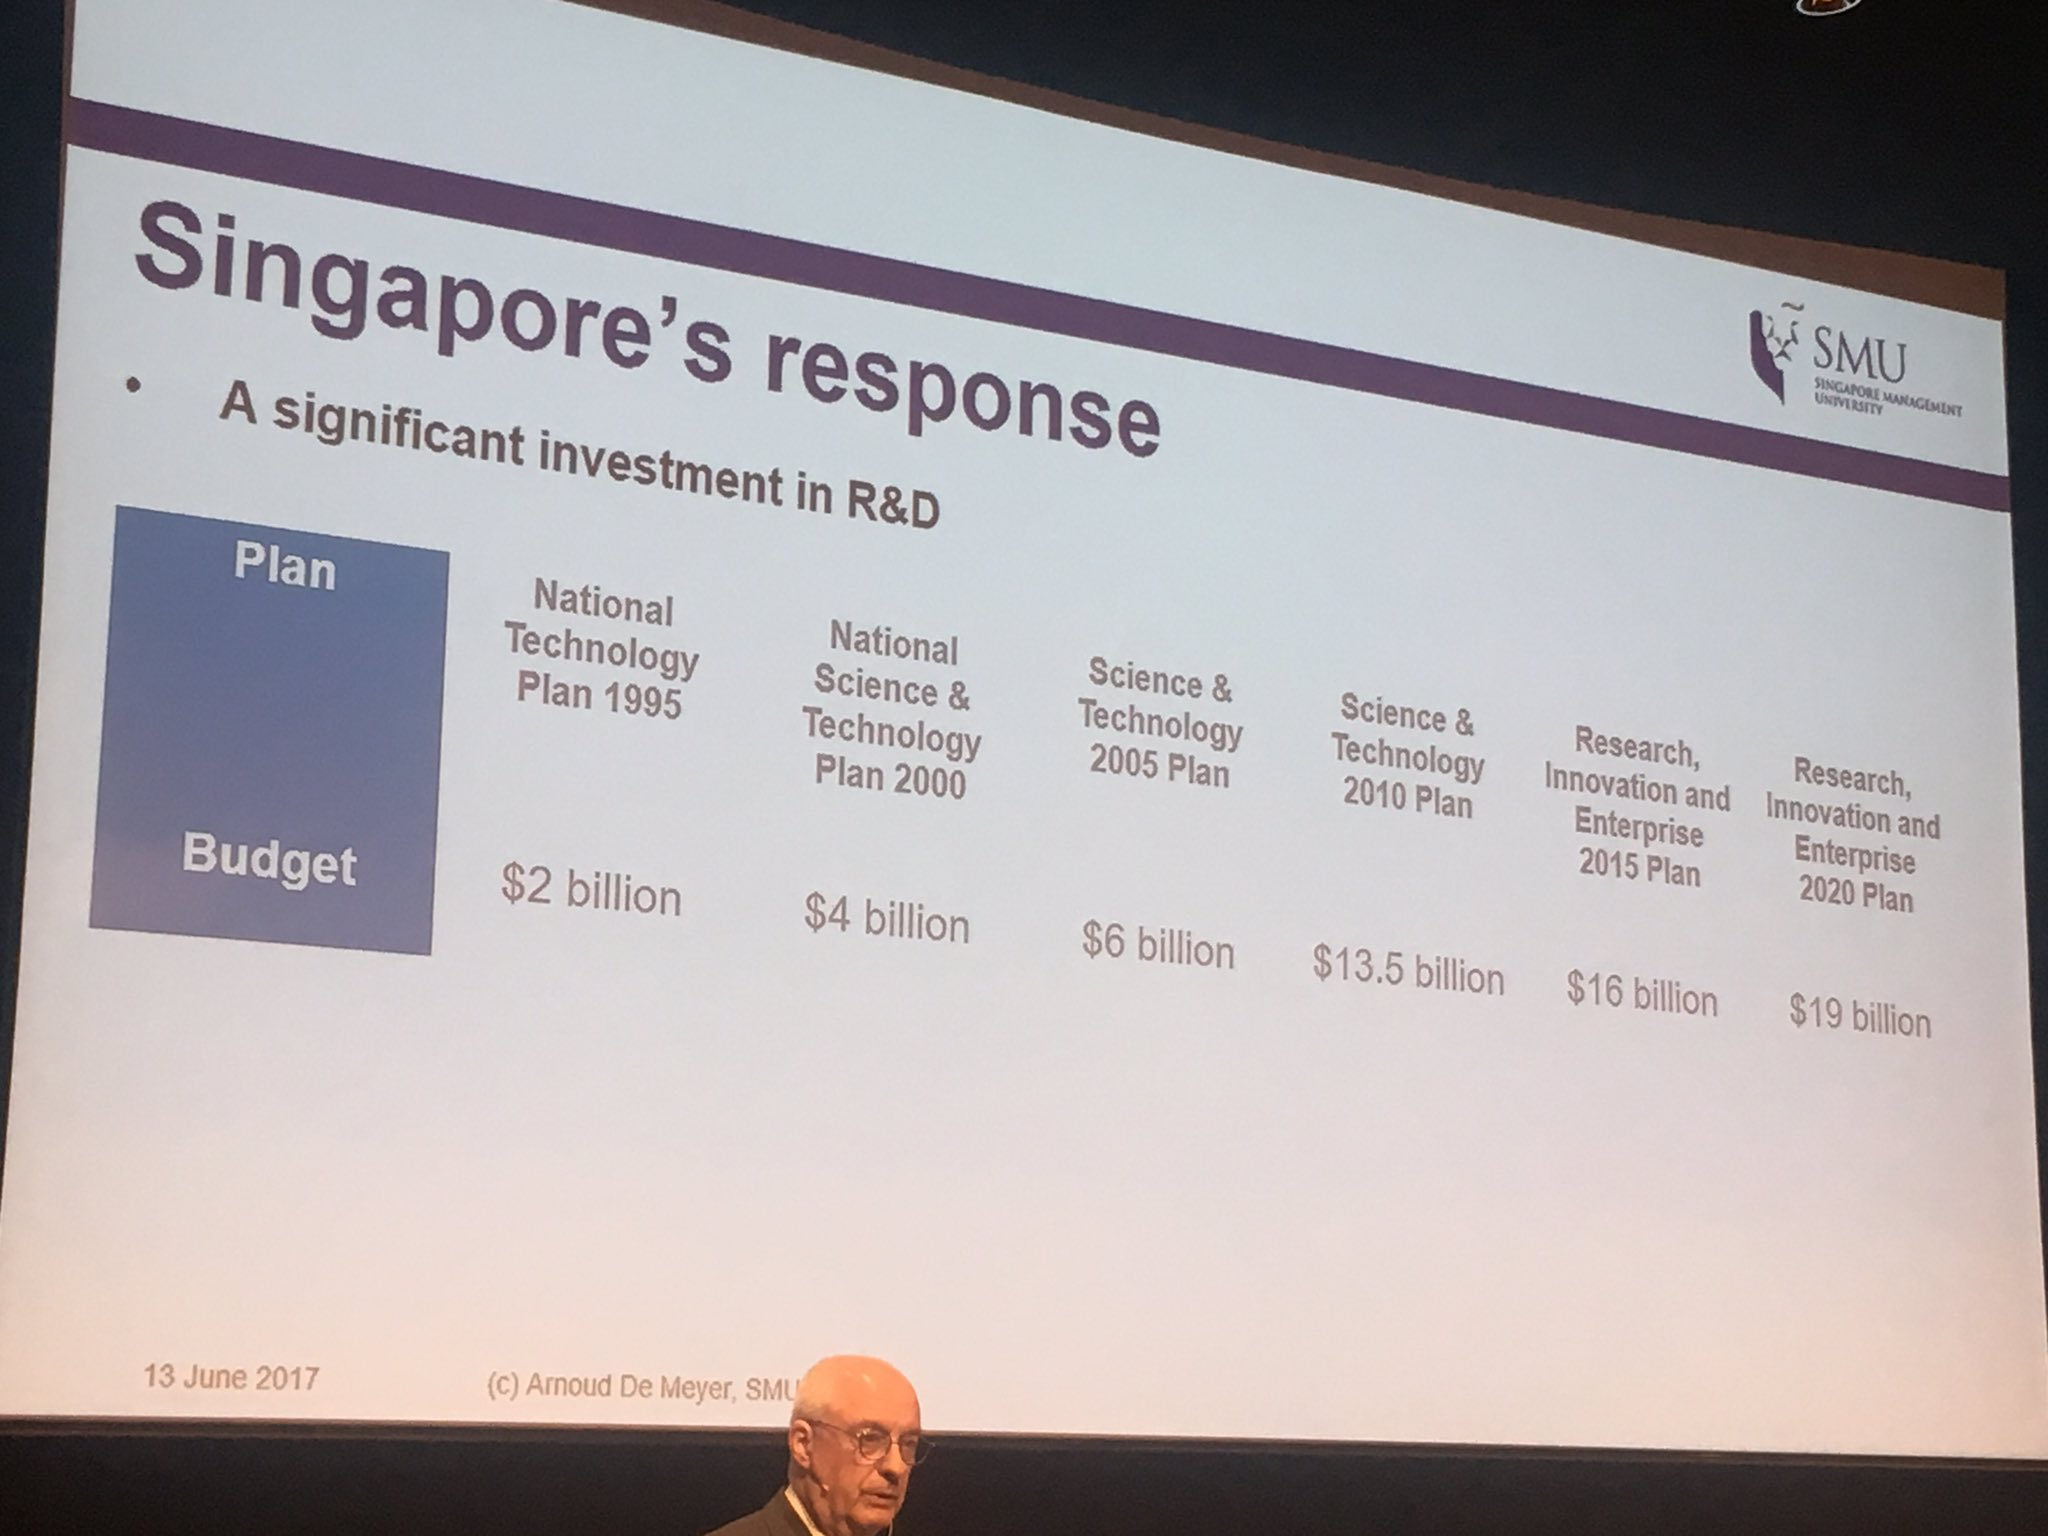 Singpore's.increasing investment in R&D over time from $2 - 19bn #IGL2017 https://t.co/dJXvvHwKPA